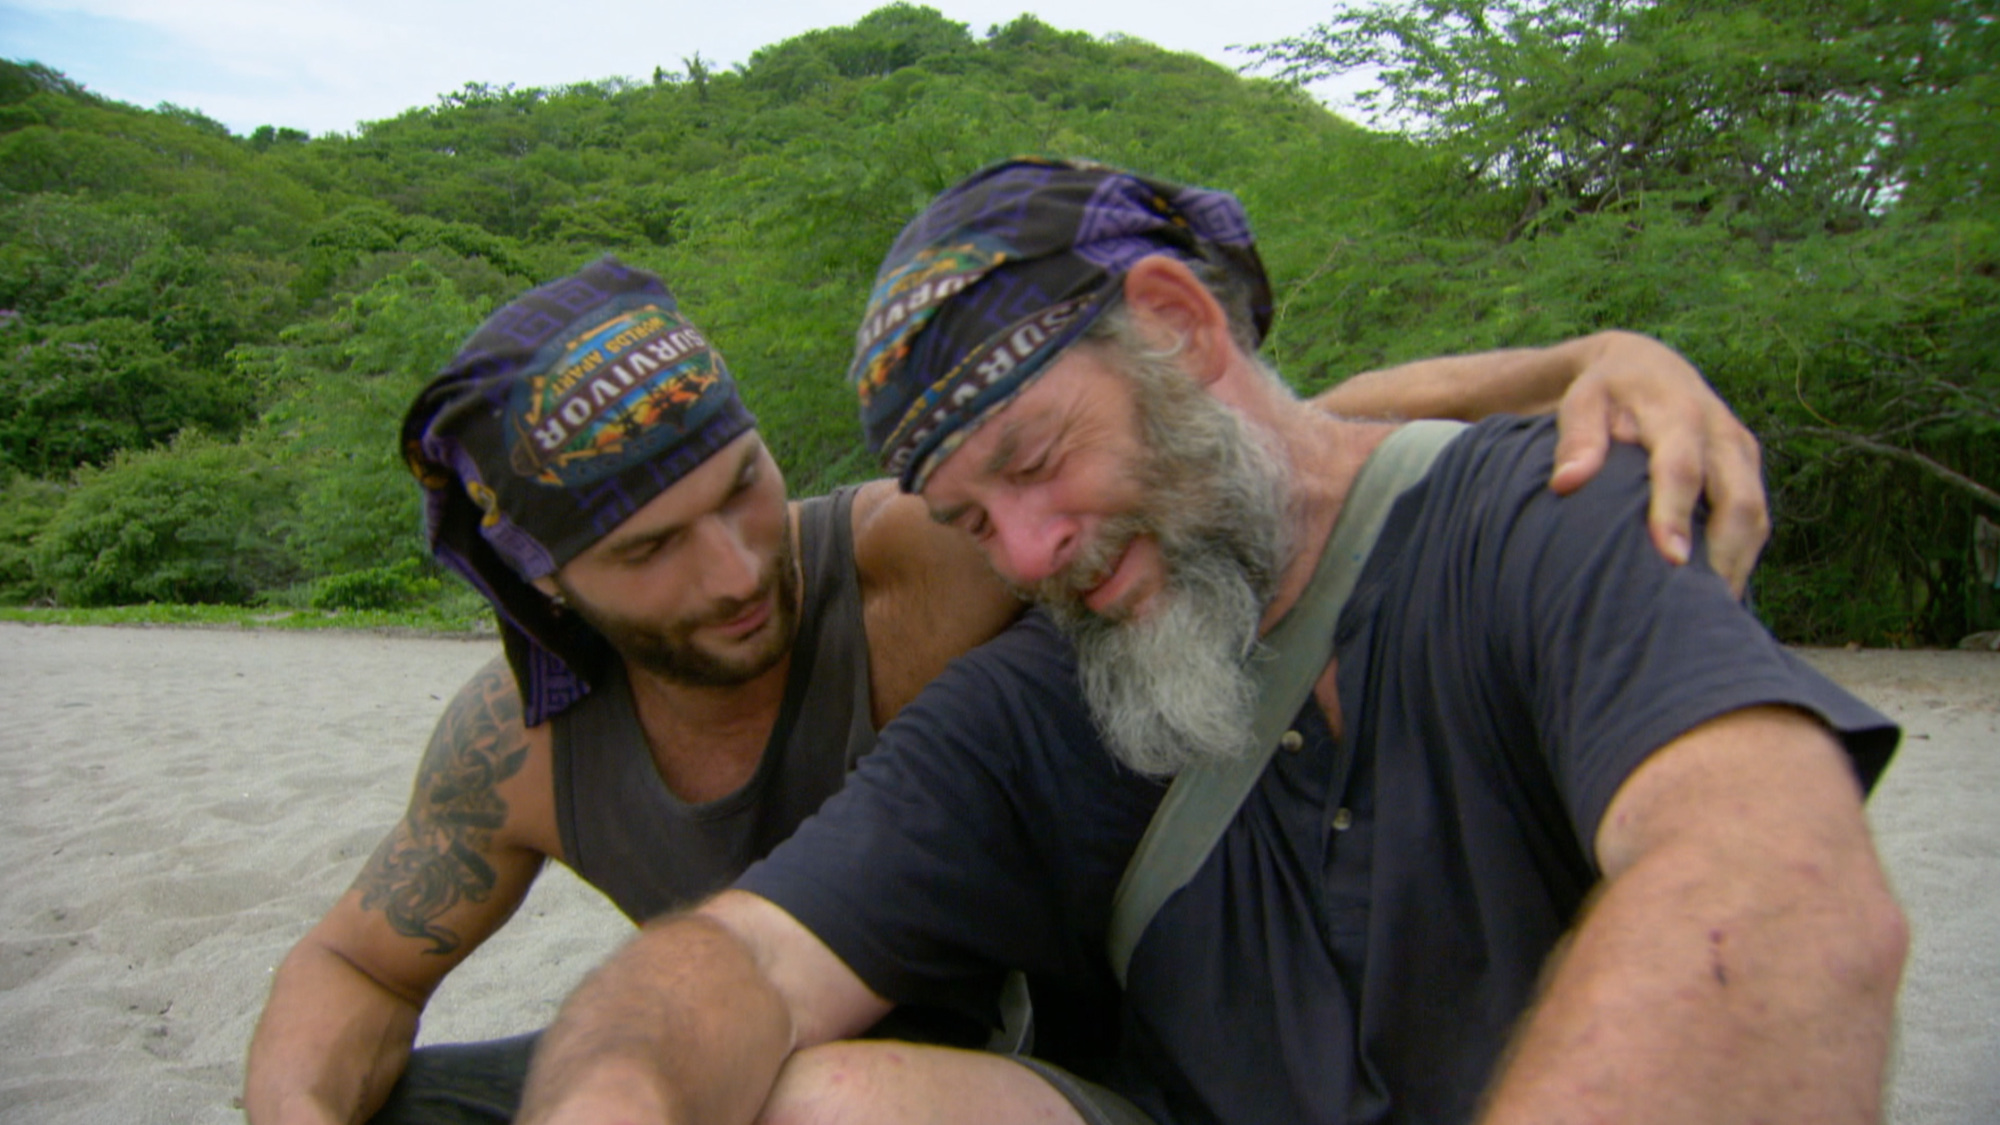 Dan gets emotional, and Rodney's there to listen